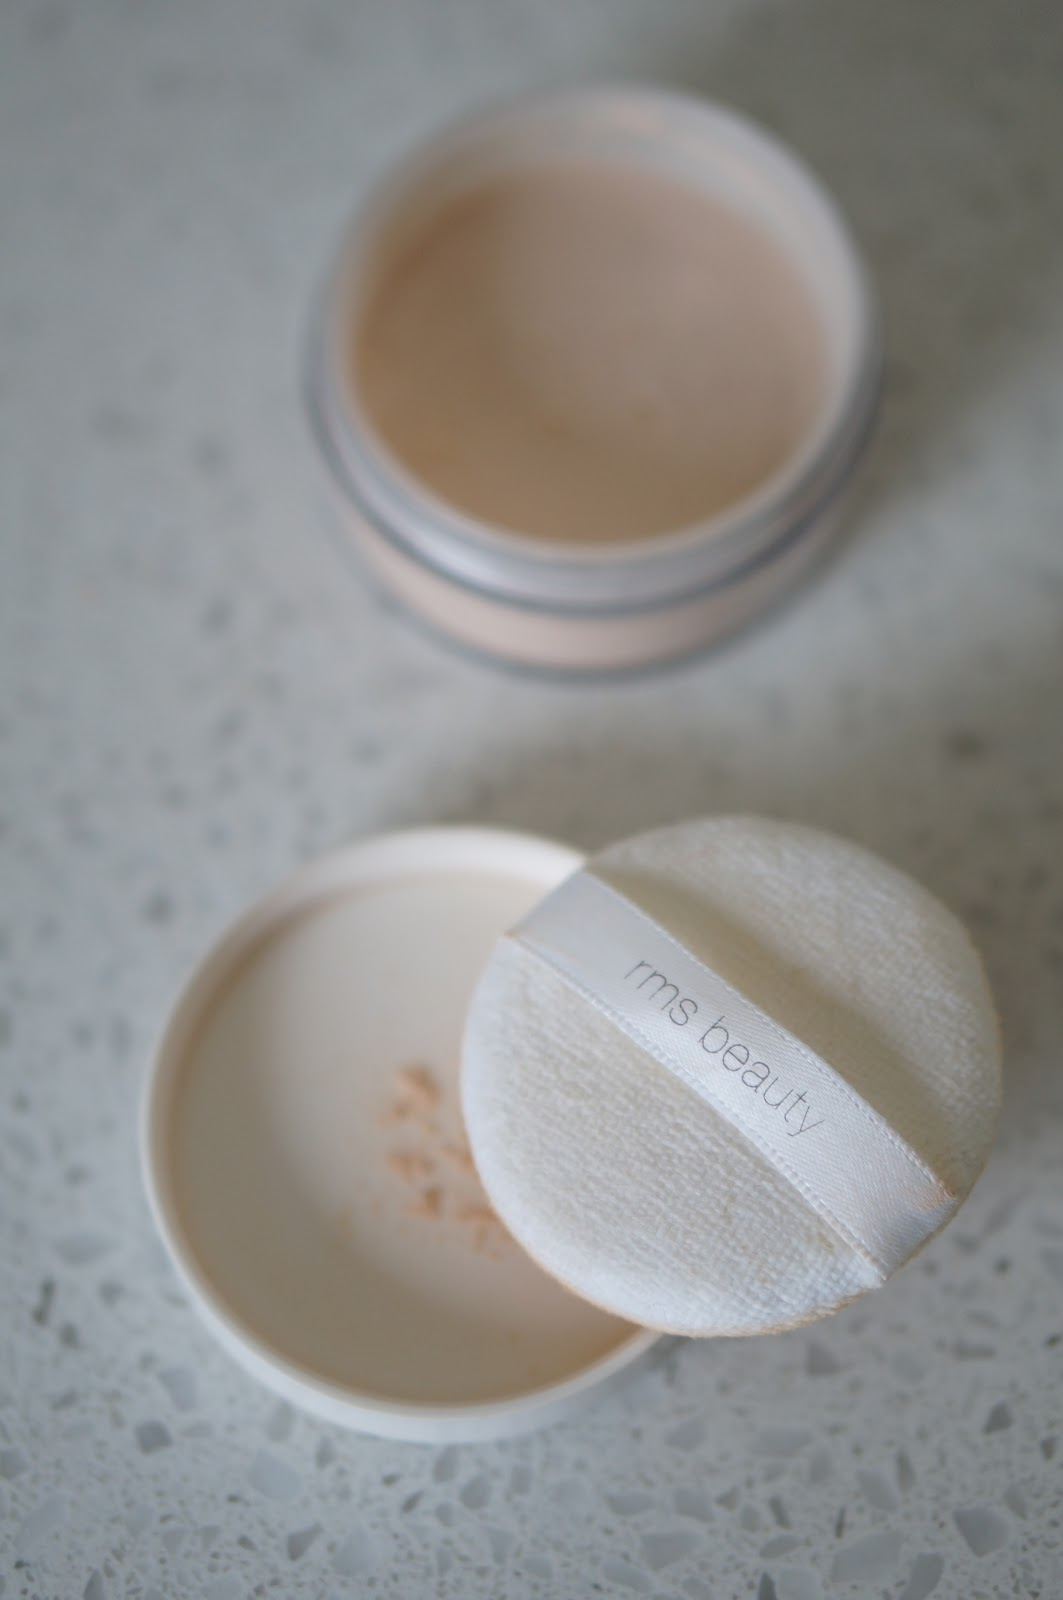 RMS UN POWDER by popular North Carolina beauty blogger Rebecca Lately